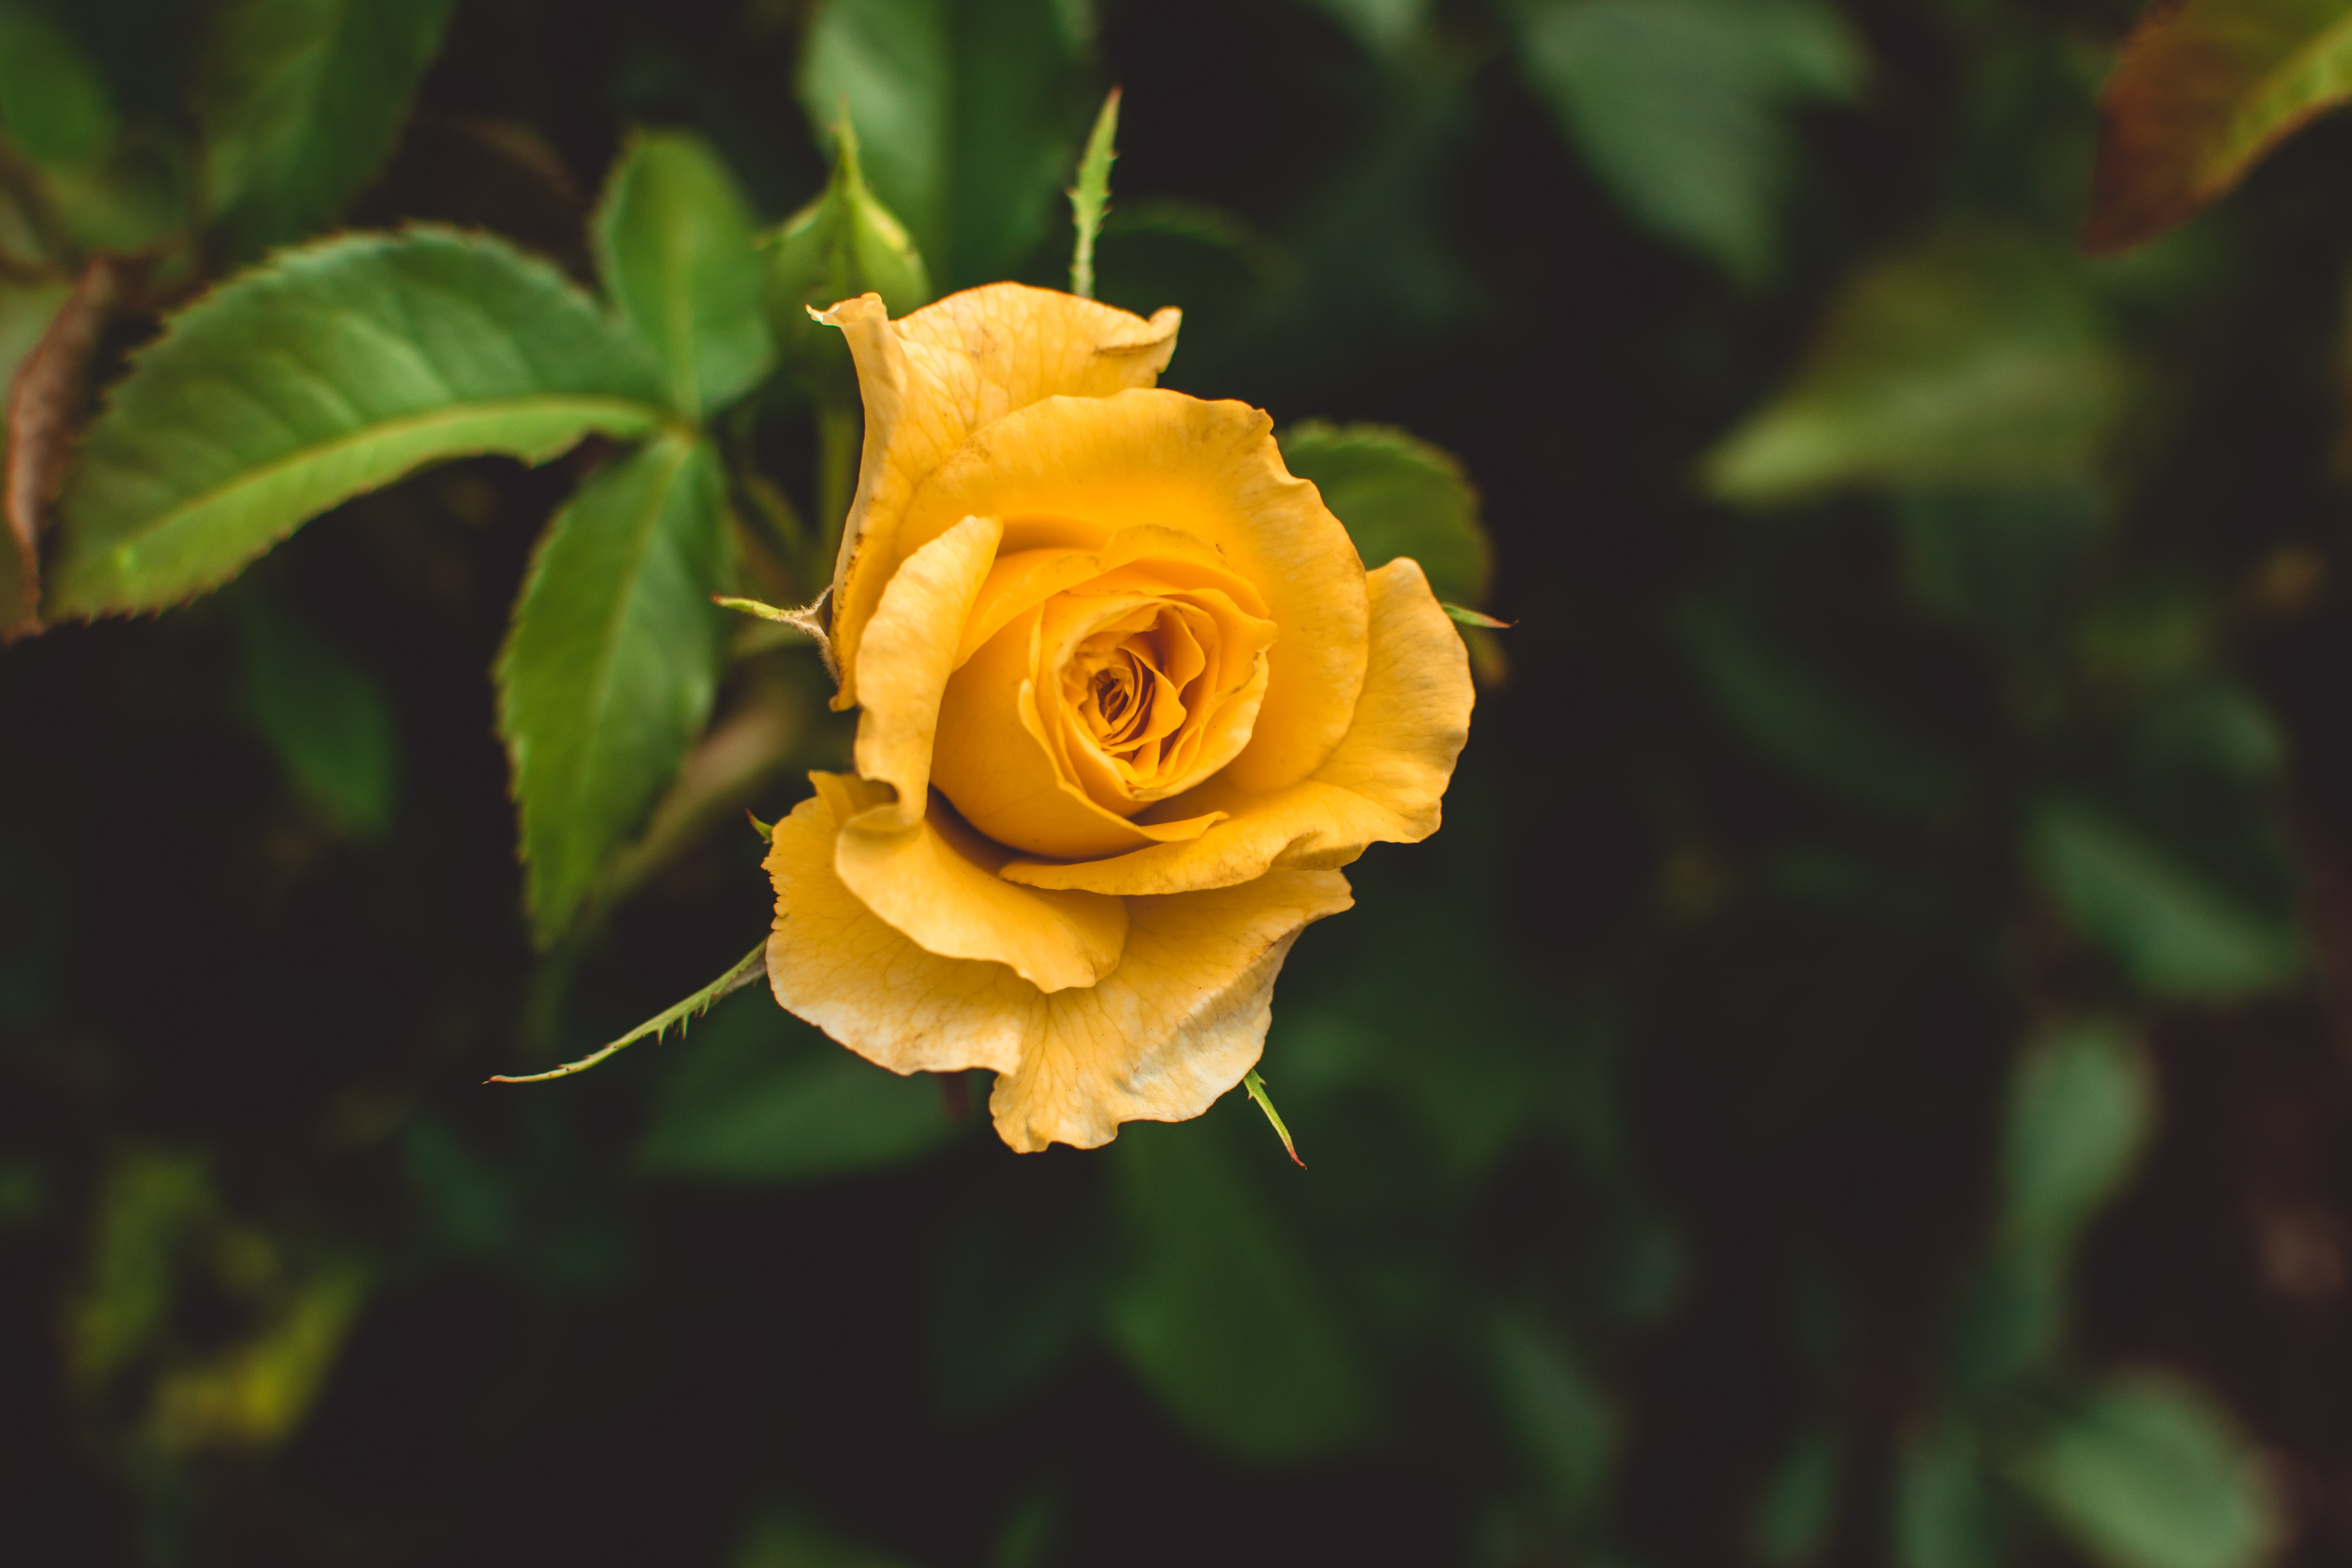 yellow rose in shallow focus photography